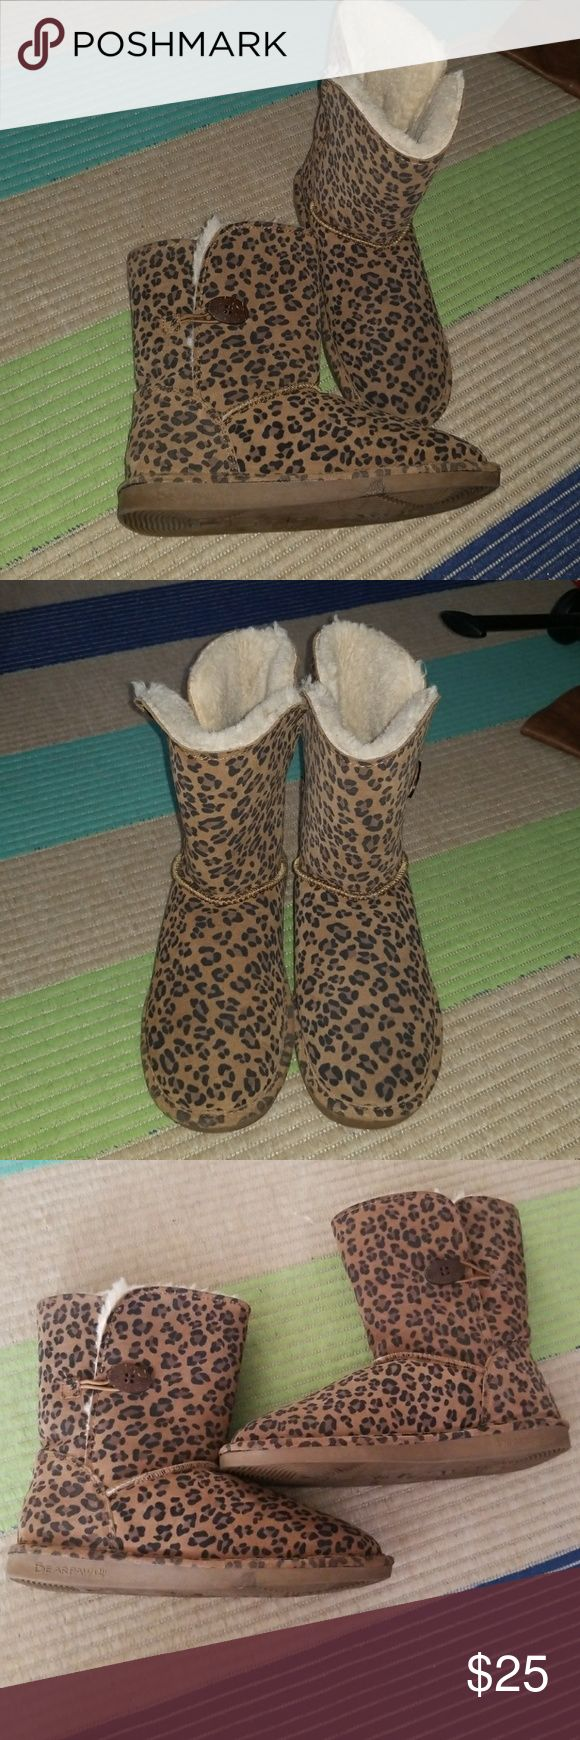 Bear paw cheetah fur (like ugg) winter snow boots Cheetah leopard animal print winter boots. Like new. Worn 2x. BearPaw Shoes Winter & Rain Boots